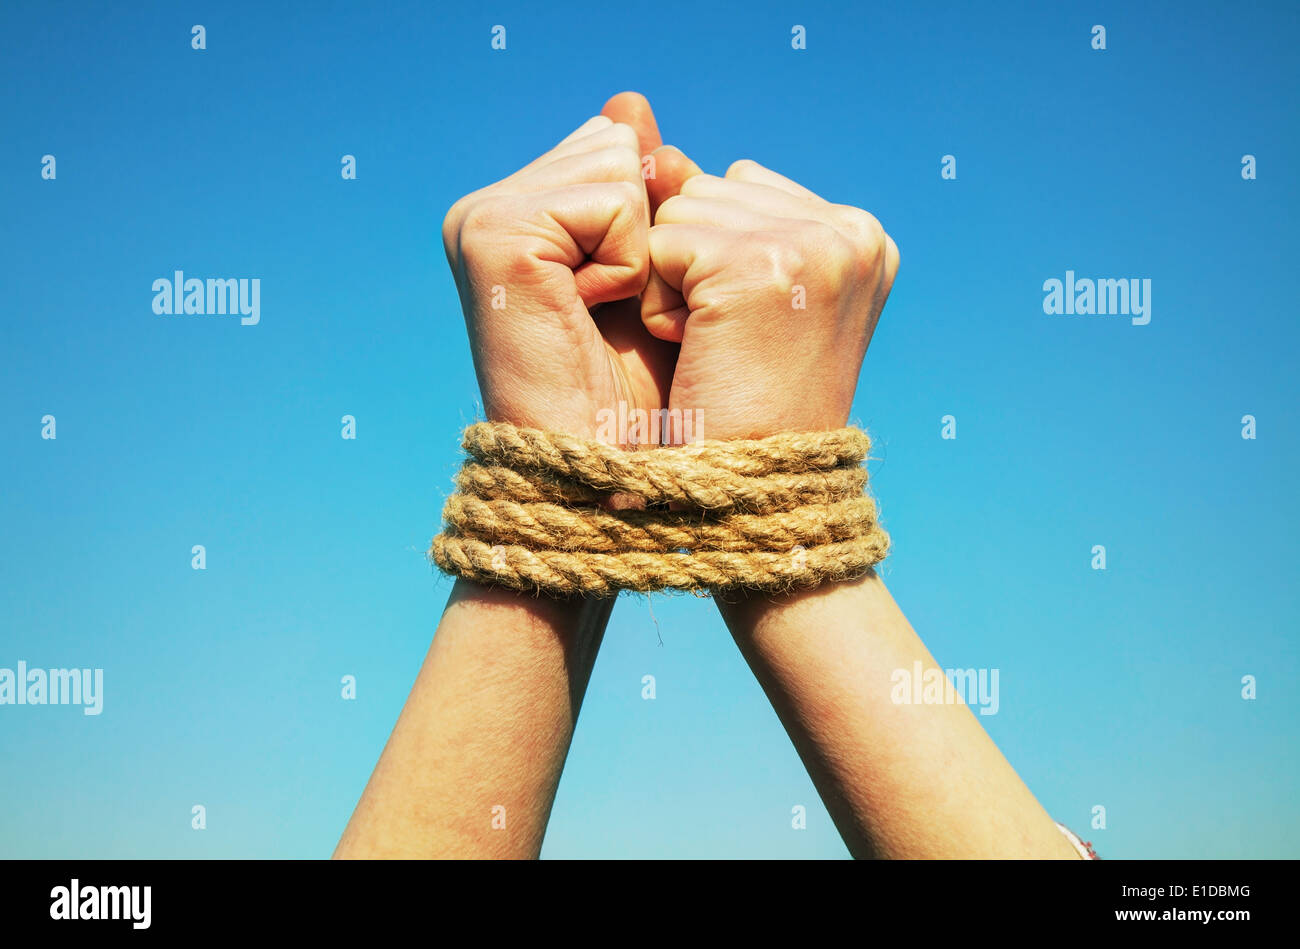 Hands tied up with rope against blue sky - Stock Image